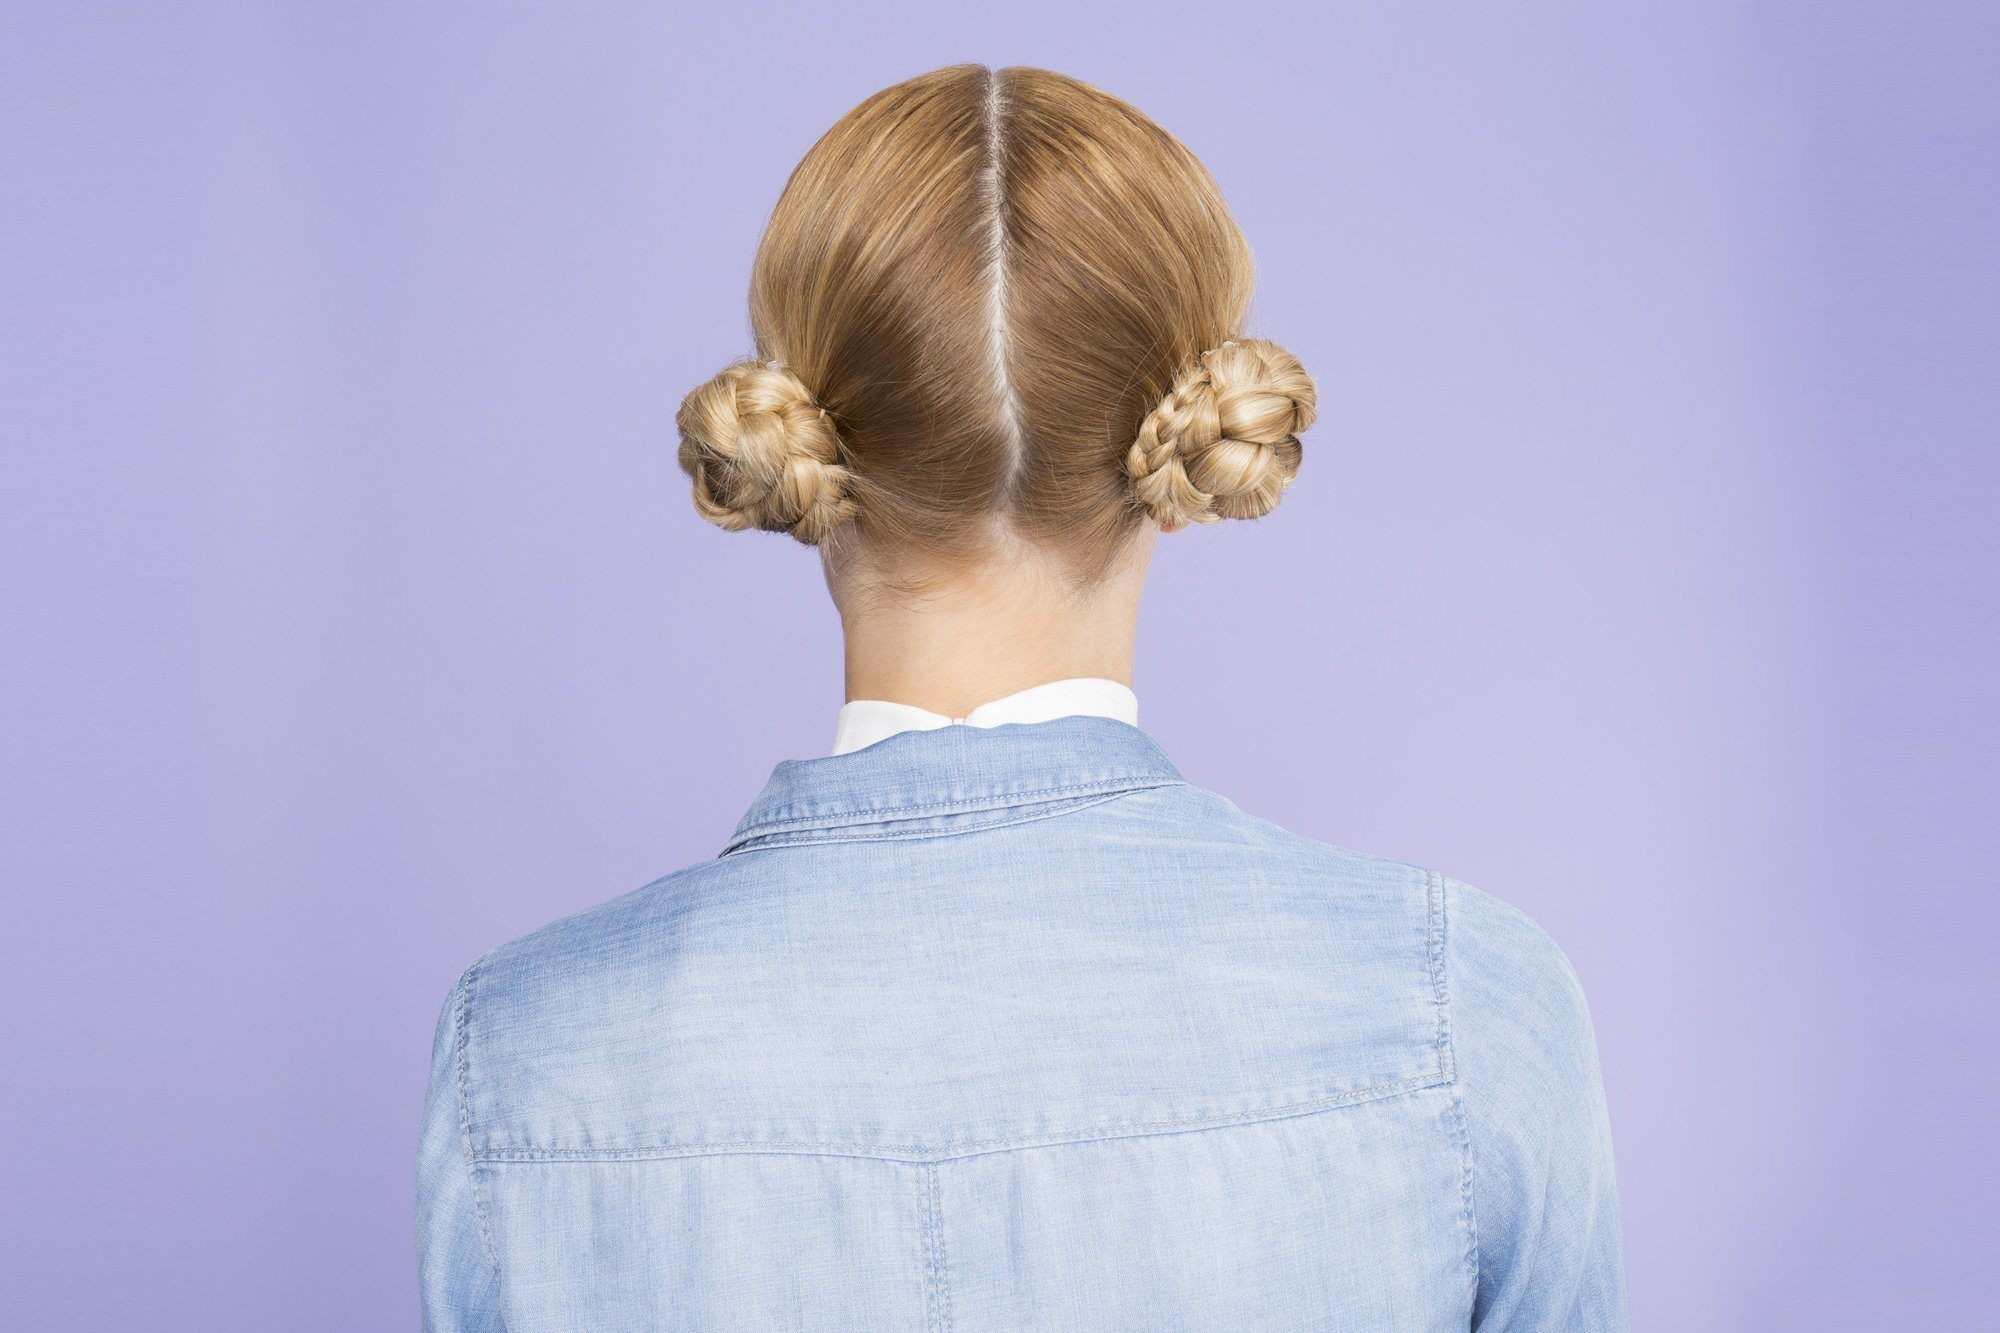 After-party hairstyles include quirky space buns.